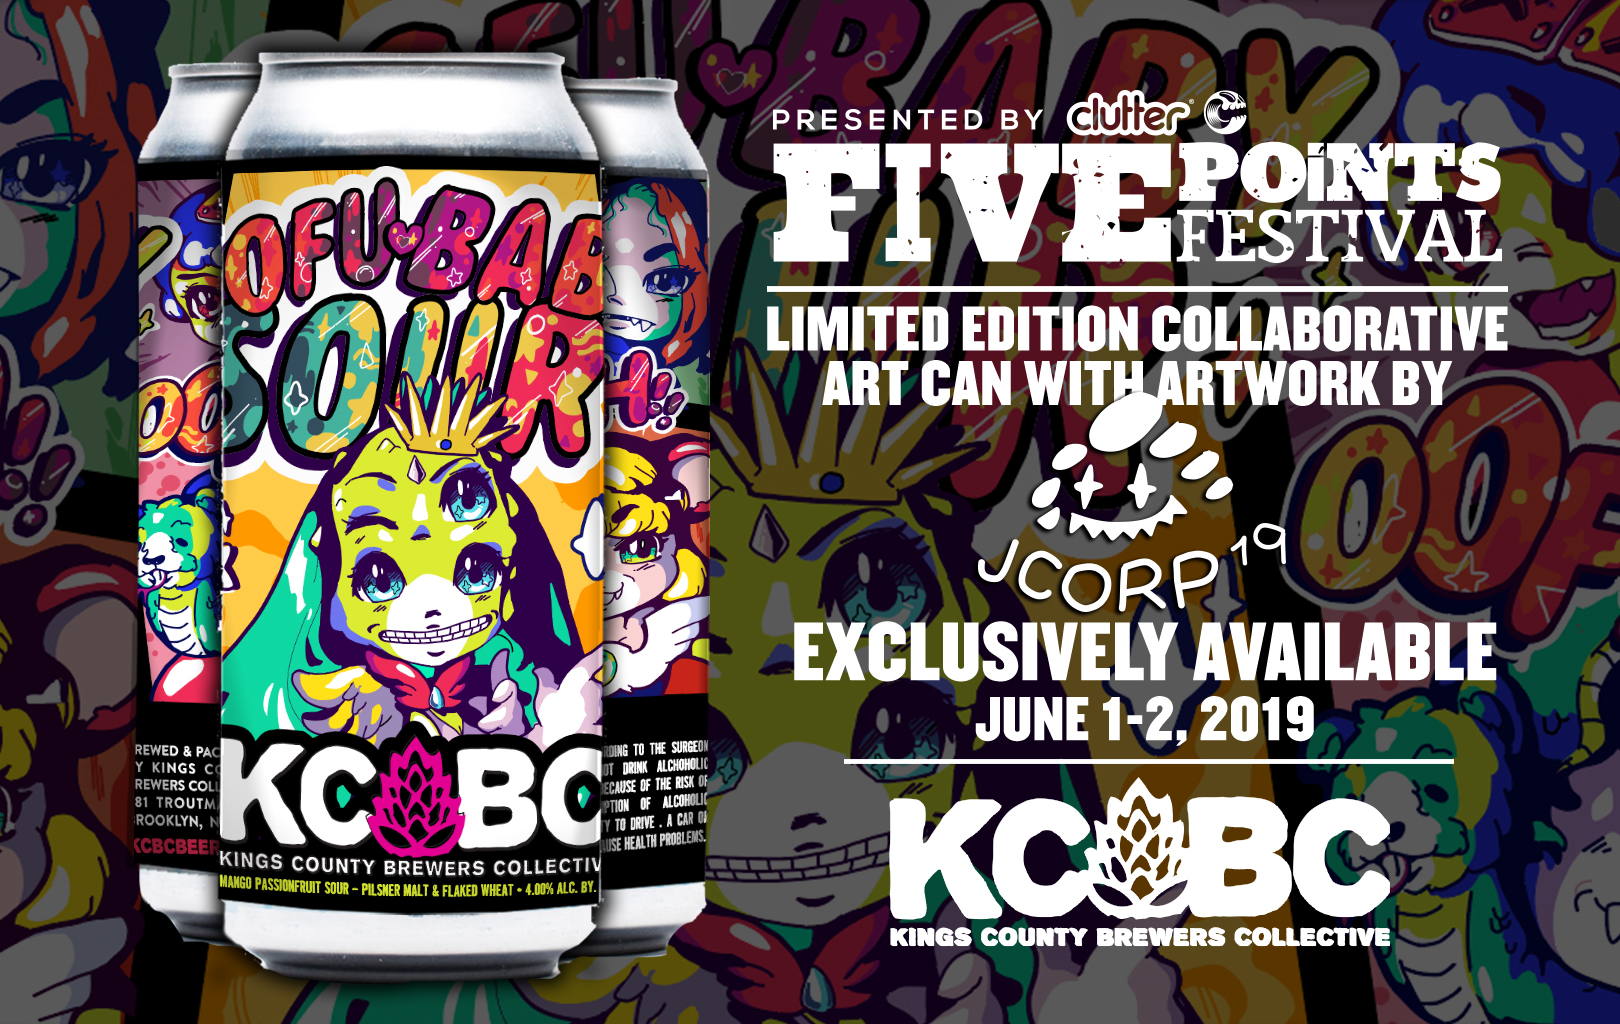 Five Points Festival: JCORP DESIGNS EXCLUSIVE KCBC BEER LABEL! - We are so excited to reveal our exclusive beer can designed by our 2018 live paint battle… our Brewser champion… JCORP!!The Sofu-Baby Sour, a delicious mango, passion fruit sour brewed by KCBC, will go on sale at 11 am on Saturday, June 1st!Last years exclusive can, with art by UK artist Czee13, sold out in 20 mins! So make sure you get this year can quick, you snooze you lose!